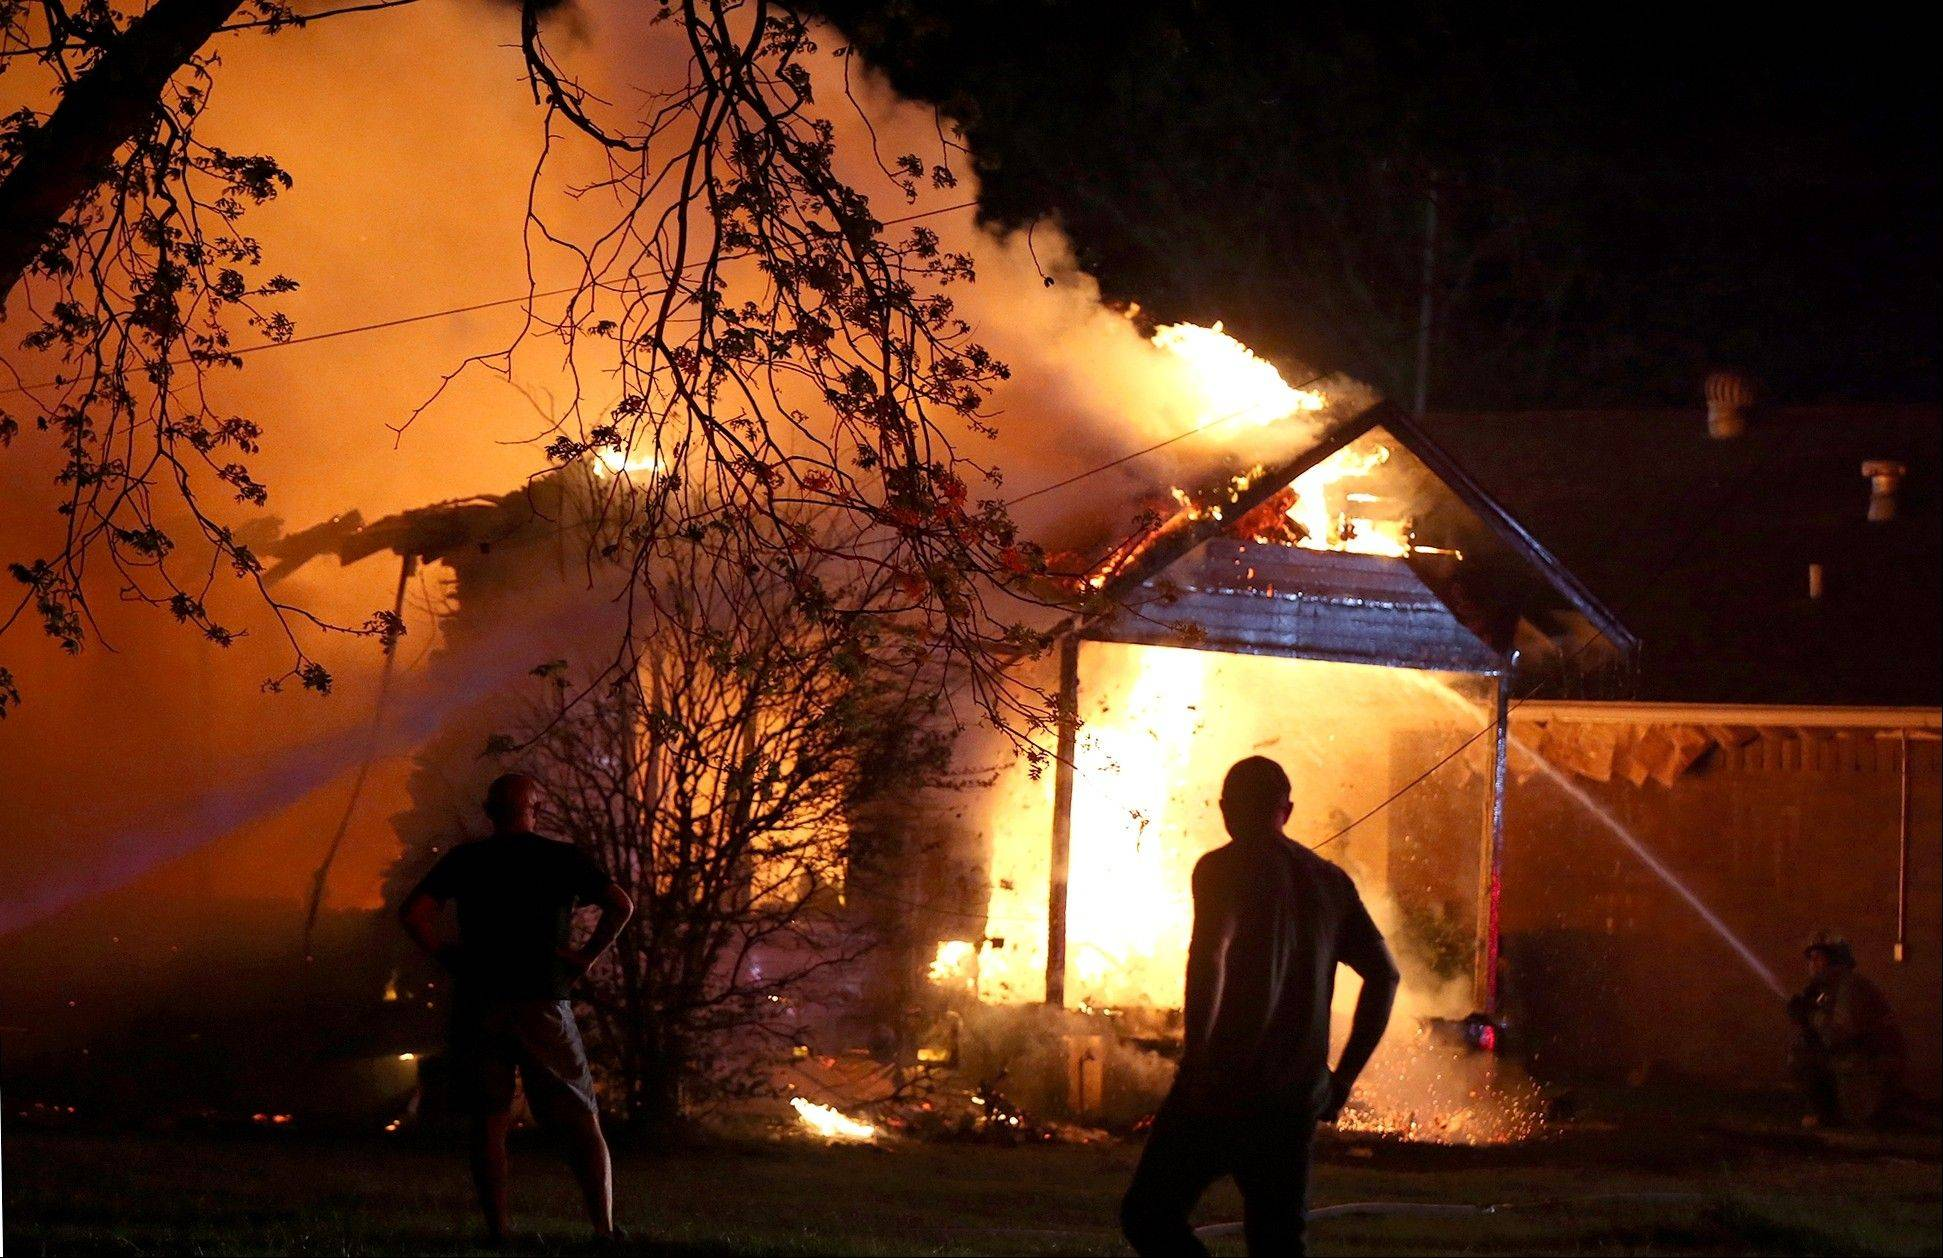 A person looks on as emergency workers fight a house fire after a near by fertilizer plant exploded.